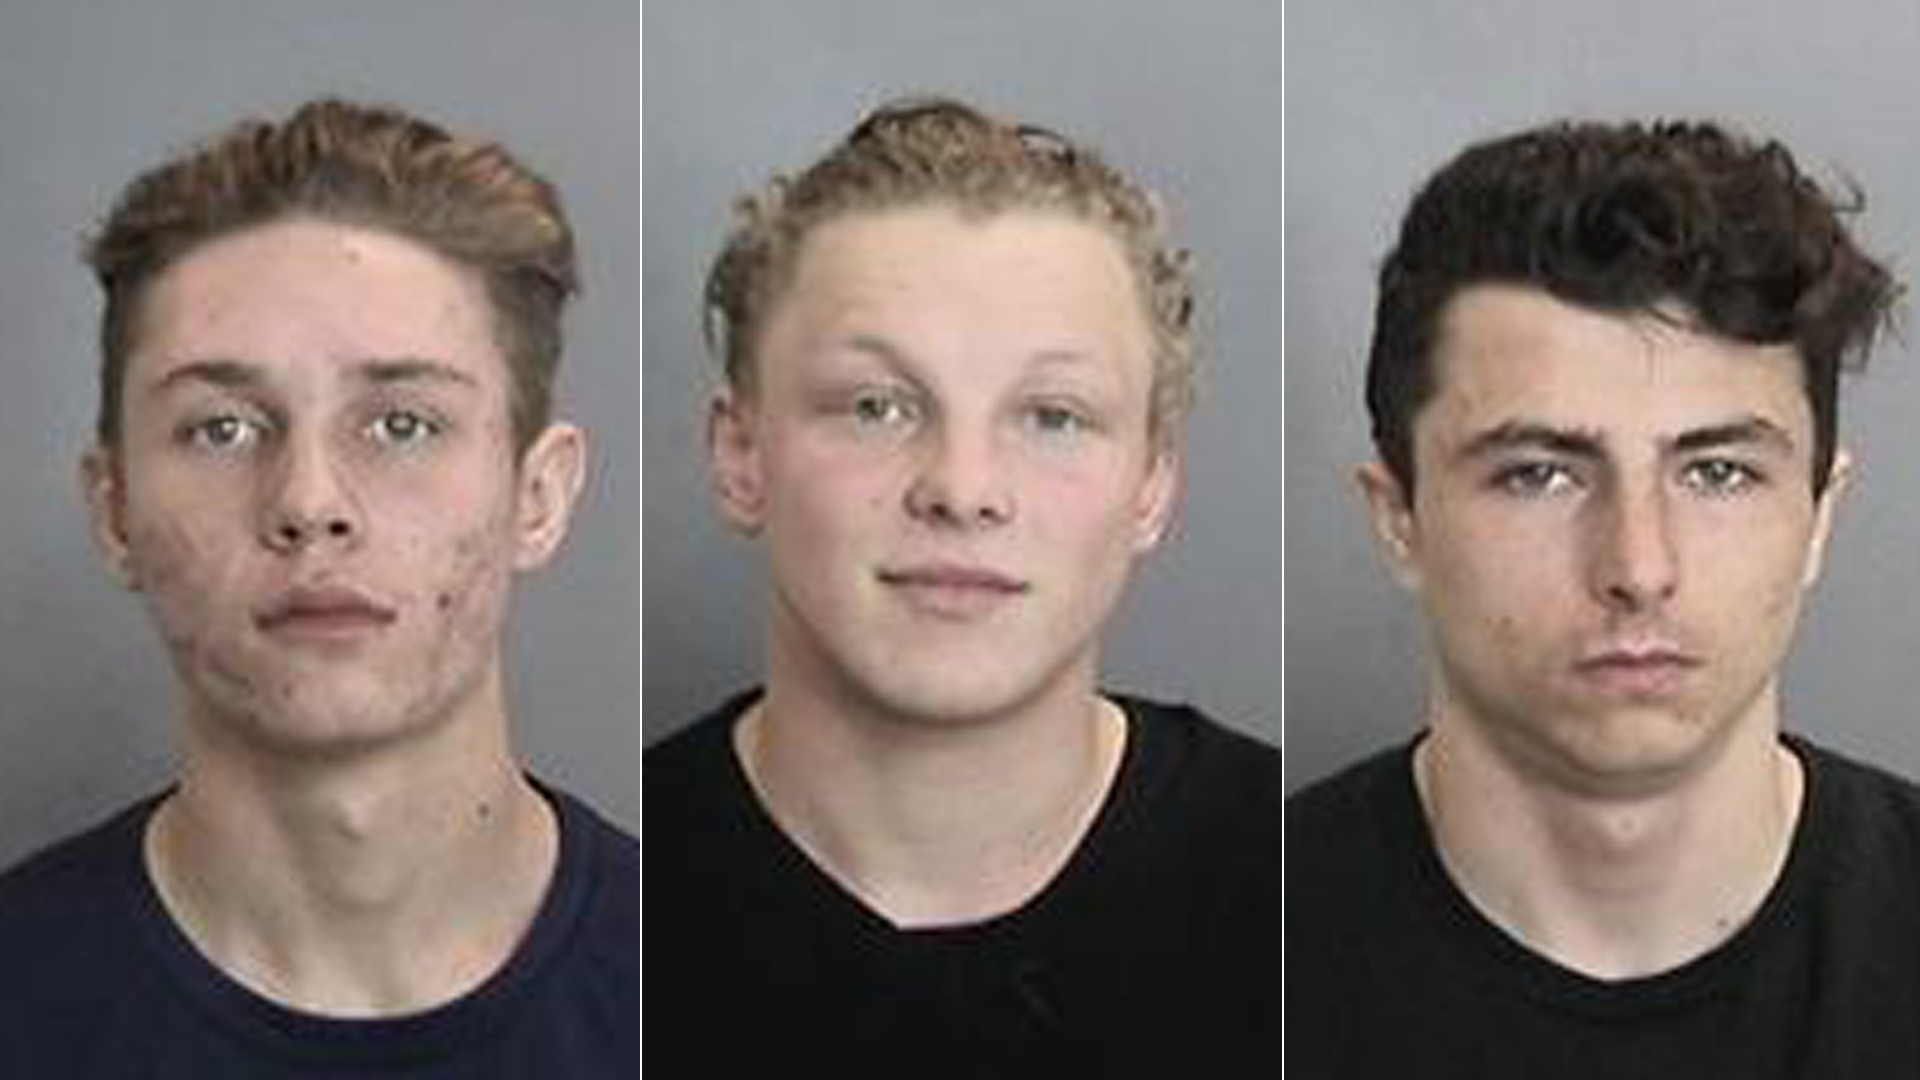 (Left to right) Jonathan Rowe, Larry Douglass and Zachary Goemaat are shown in photos released by the Anaheim Police Department on Jan. 30, 2019.